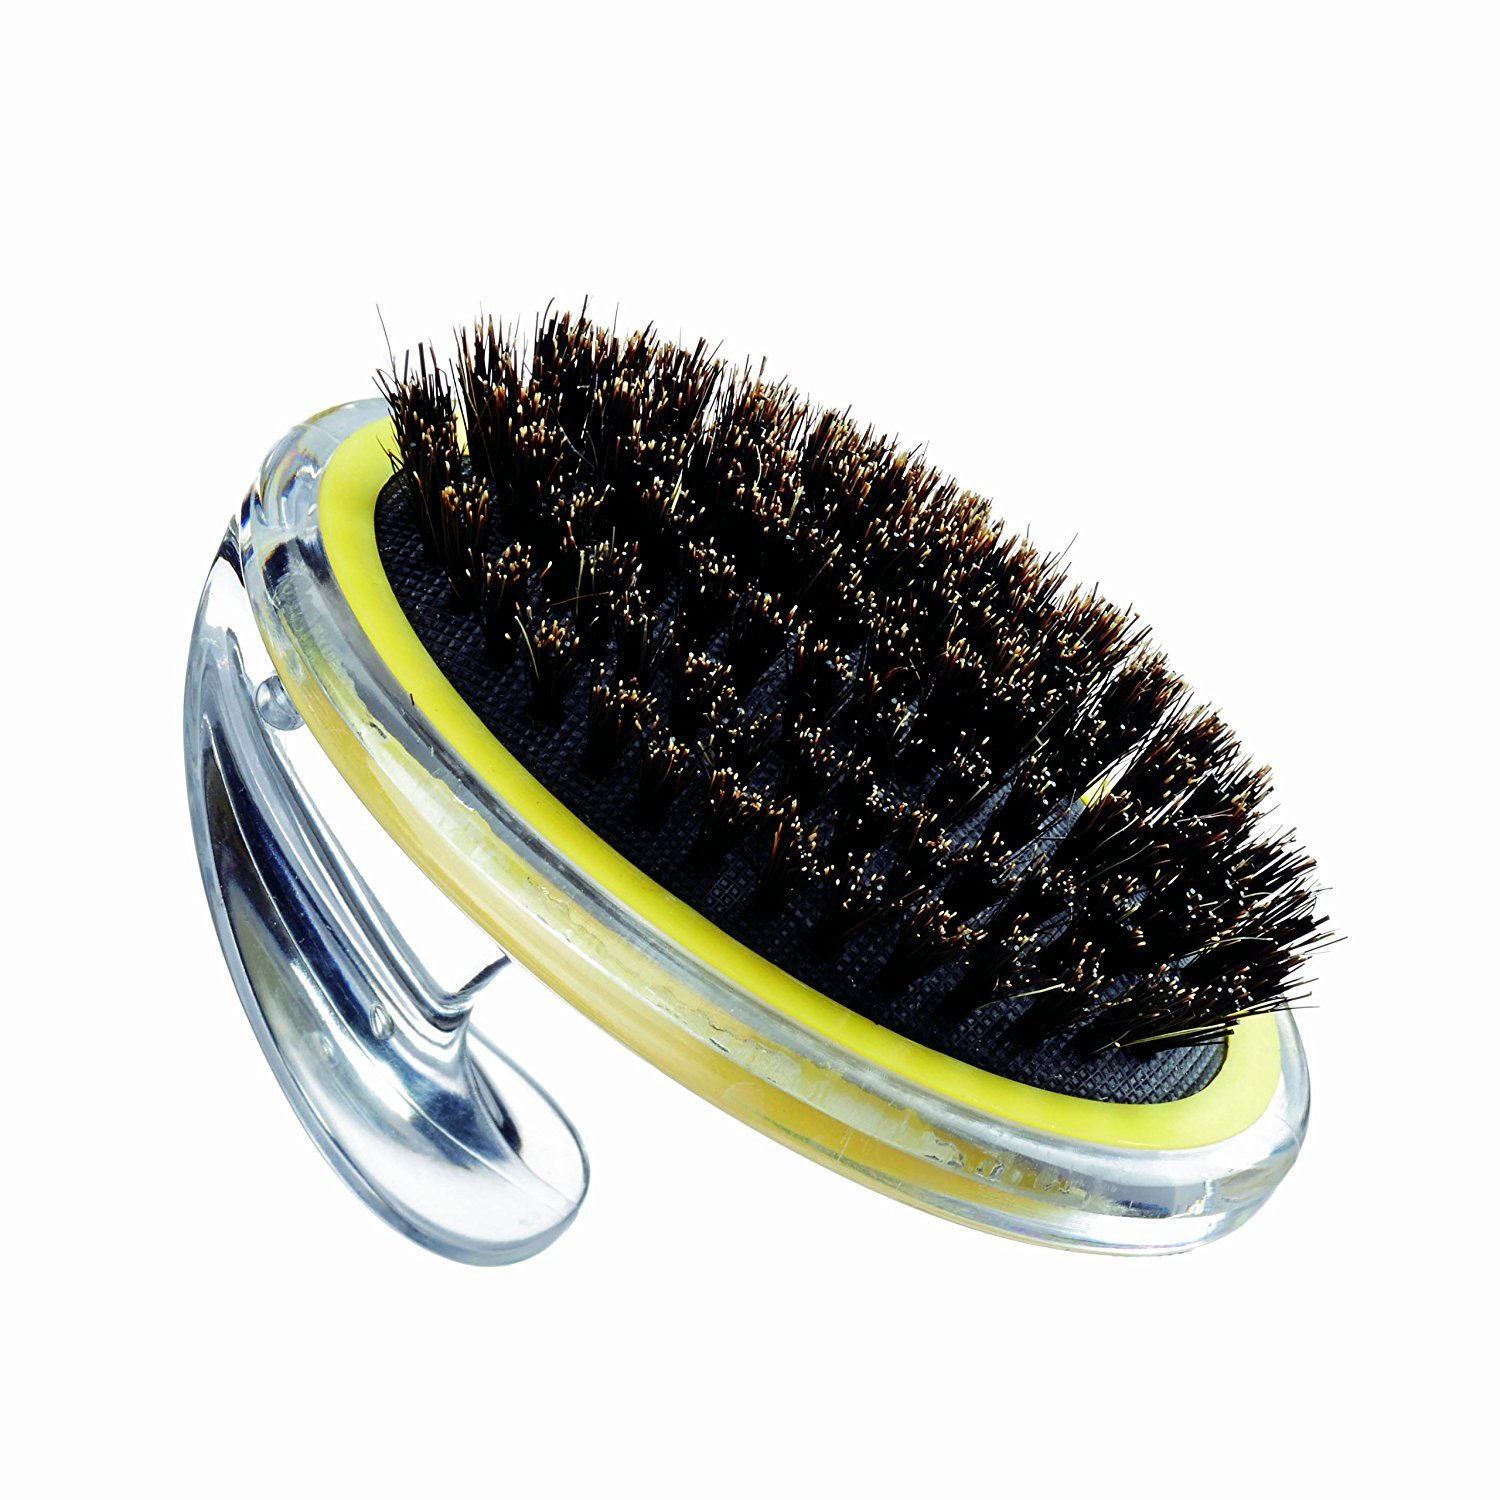 Pack of 2 Conair Bristle Brush Size Pack of 2